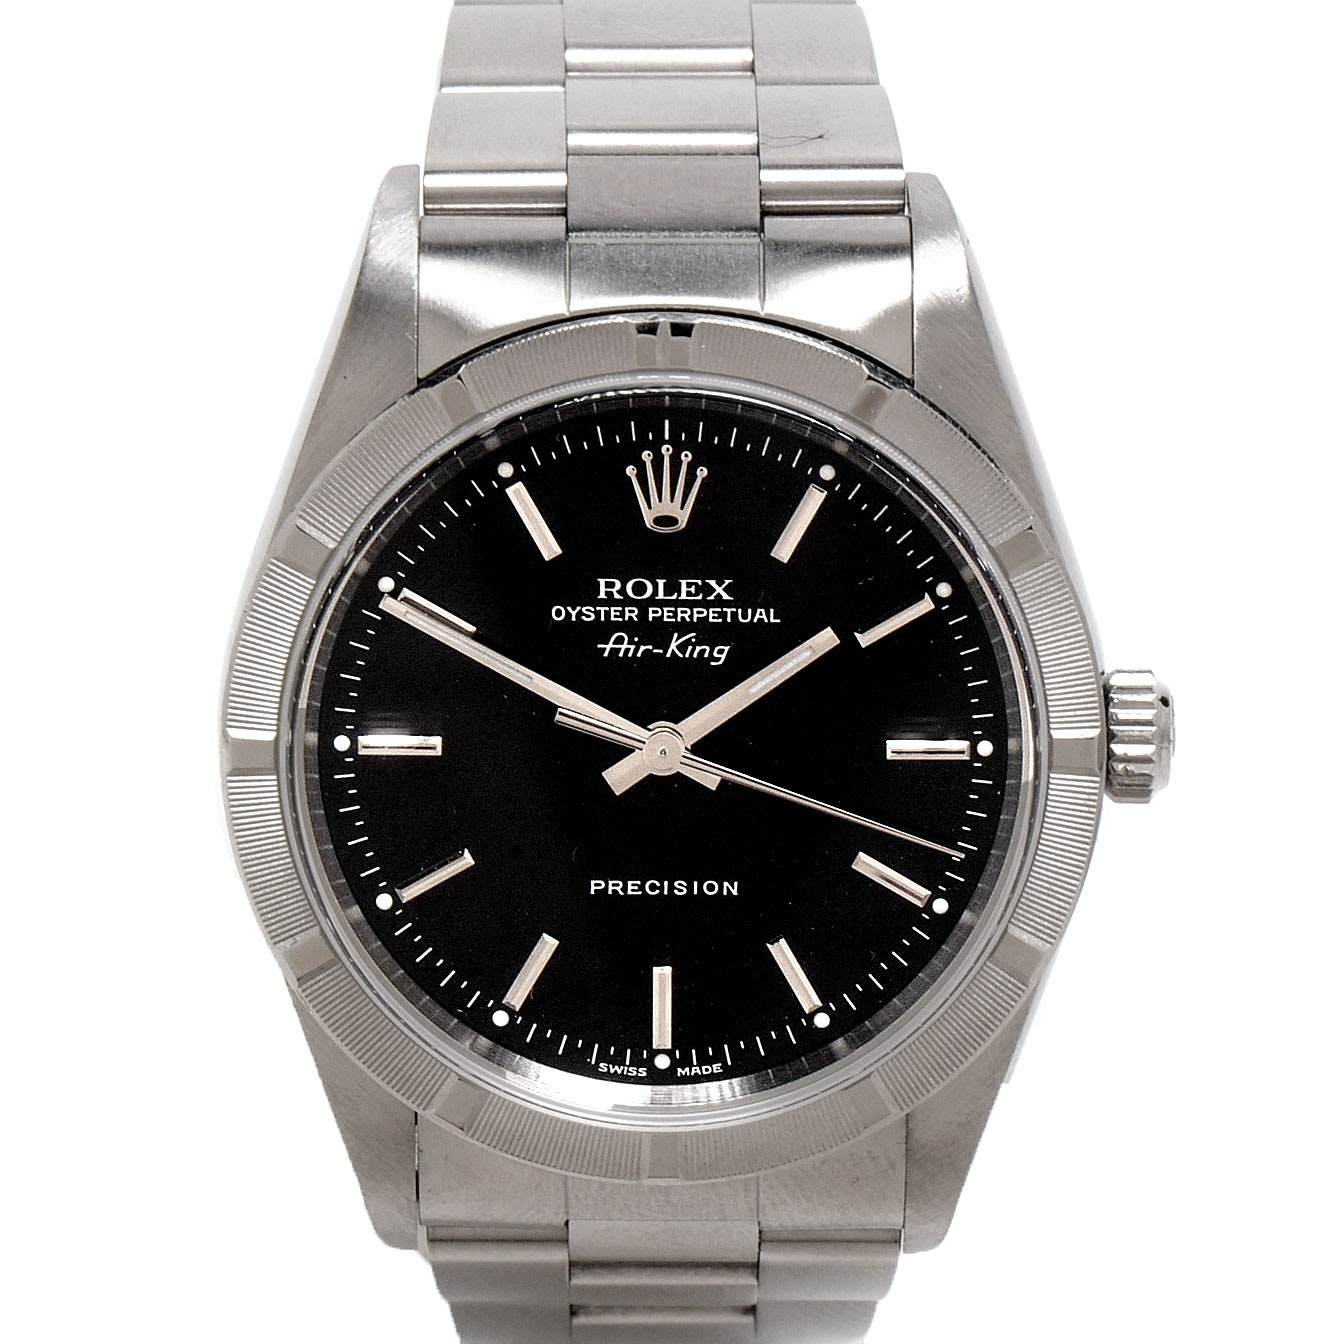 Rolex Perpetual Air-King Black Steel Dial Automatic Wristwatch